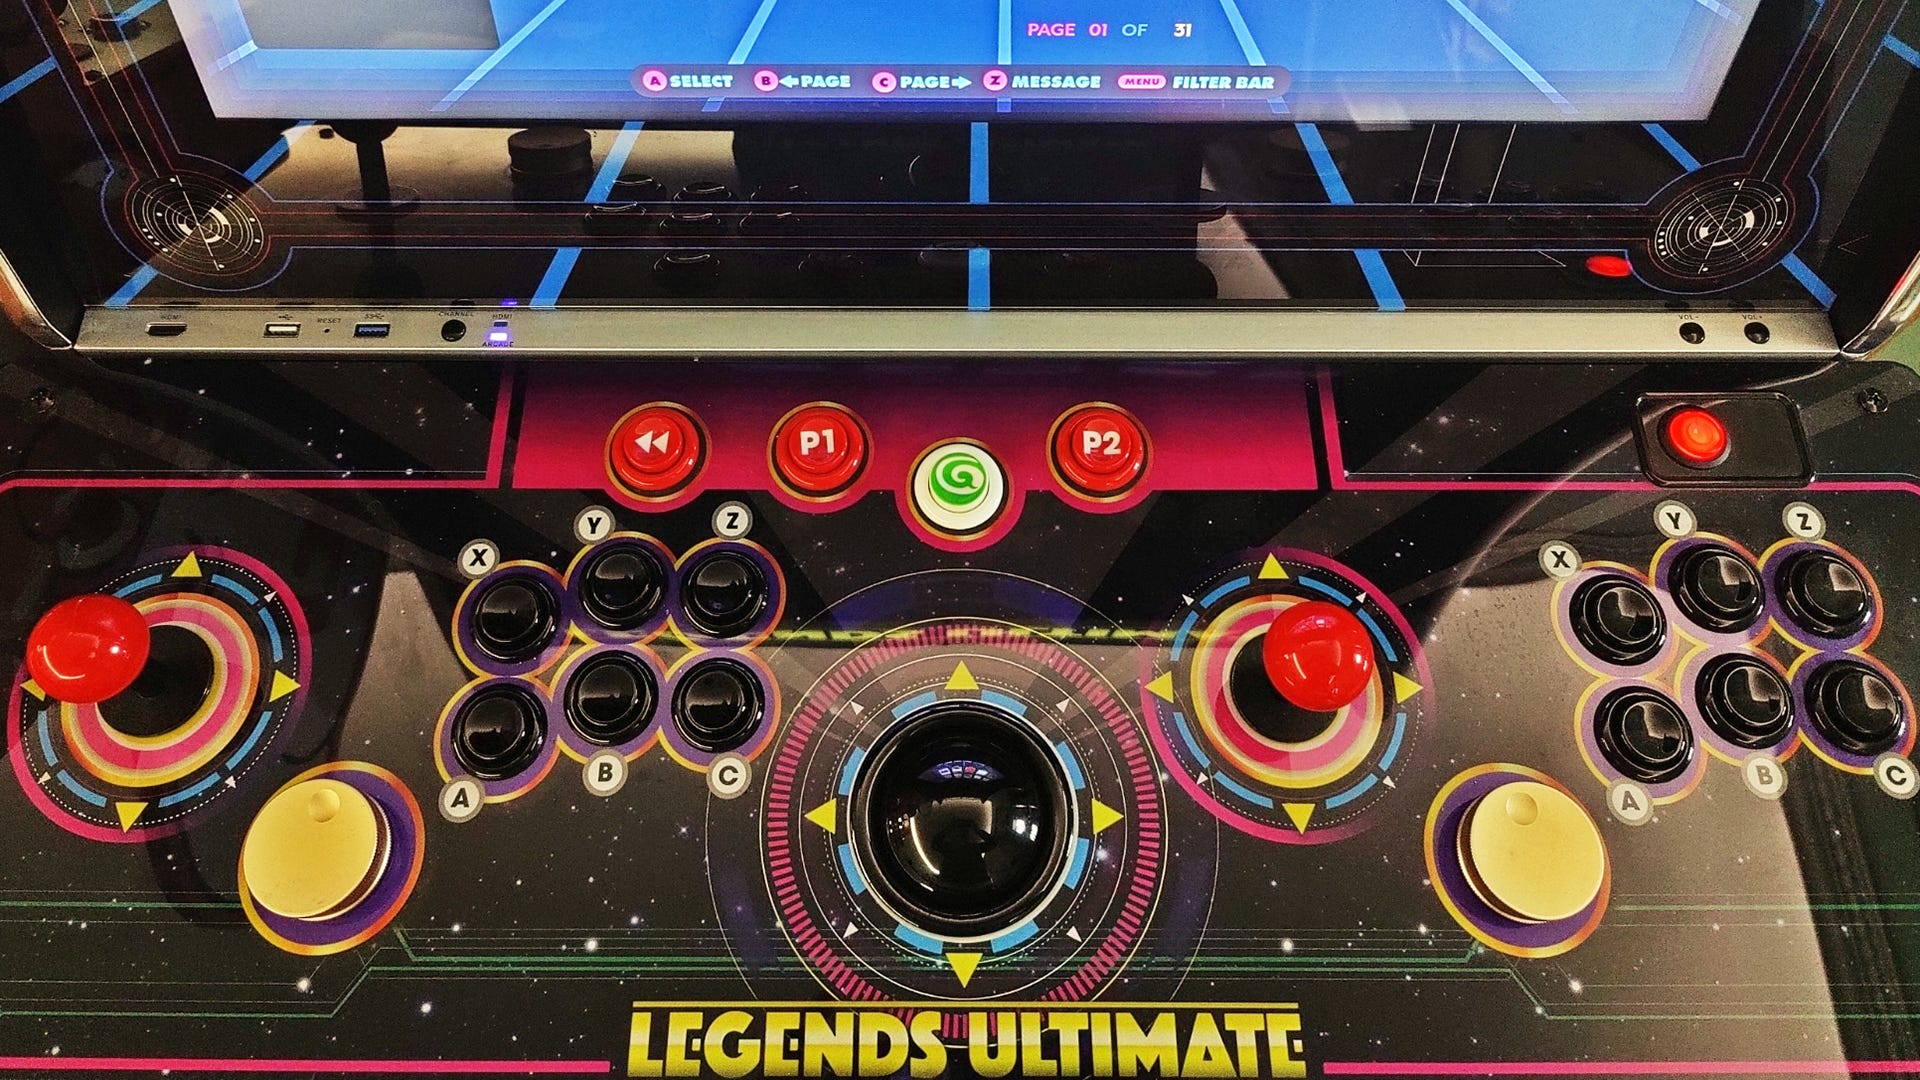 A top down view of the Legends Ultimate control deck, with two joysticks, 12 buttons, two spinners, and a trackball.